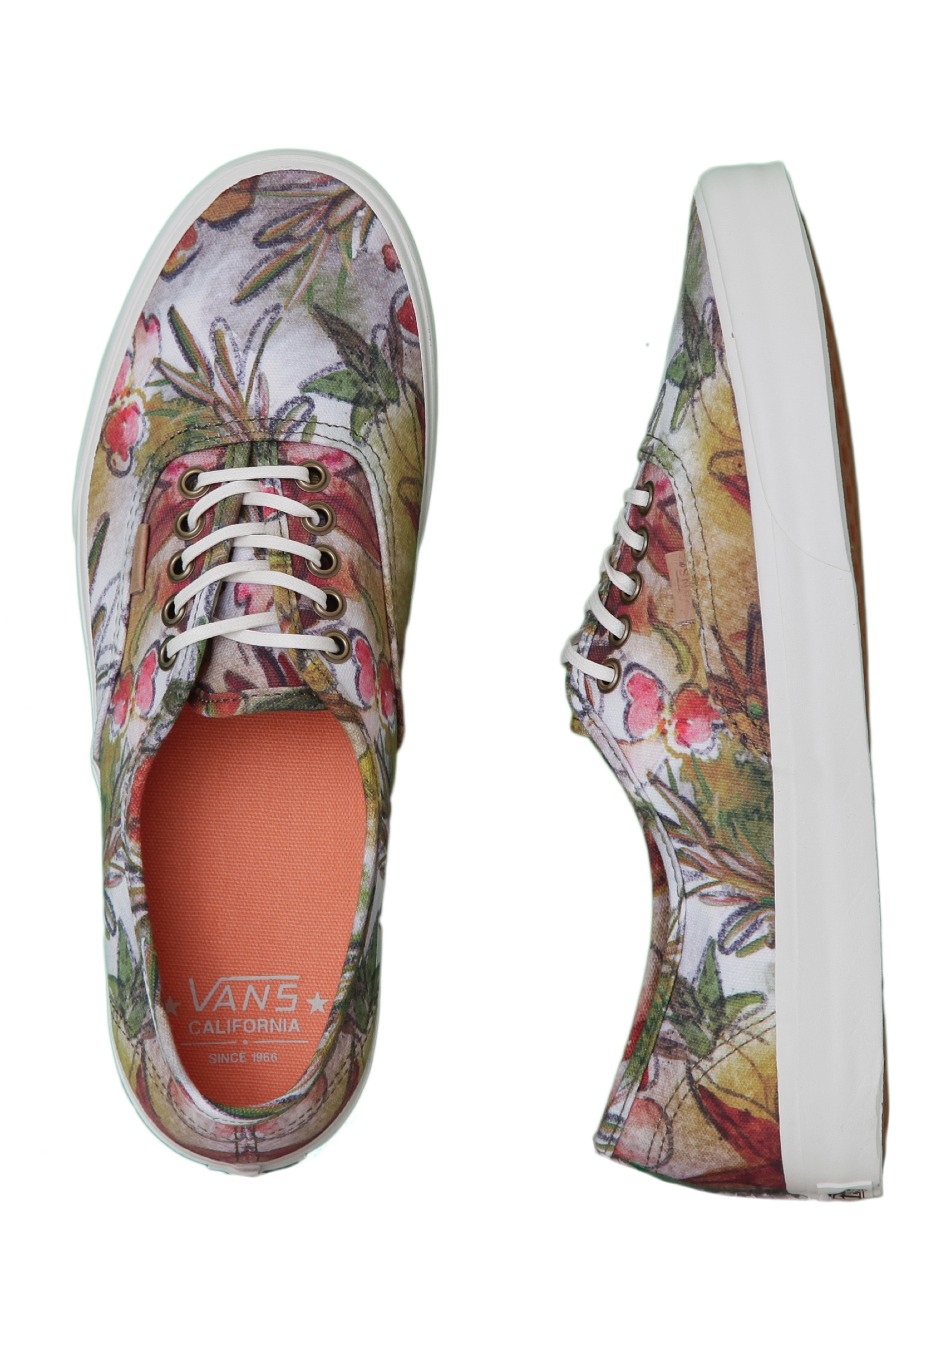 daa59b71523 Vans - Authentic CA Camo Floral Dark Olive Marshmallow - Shoes -  Impericon.com UK